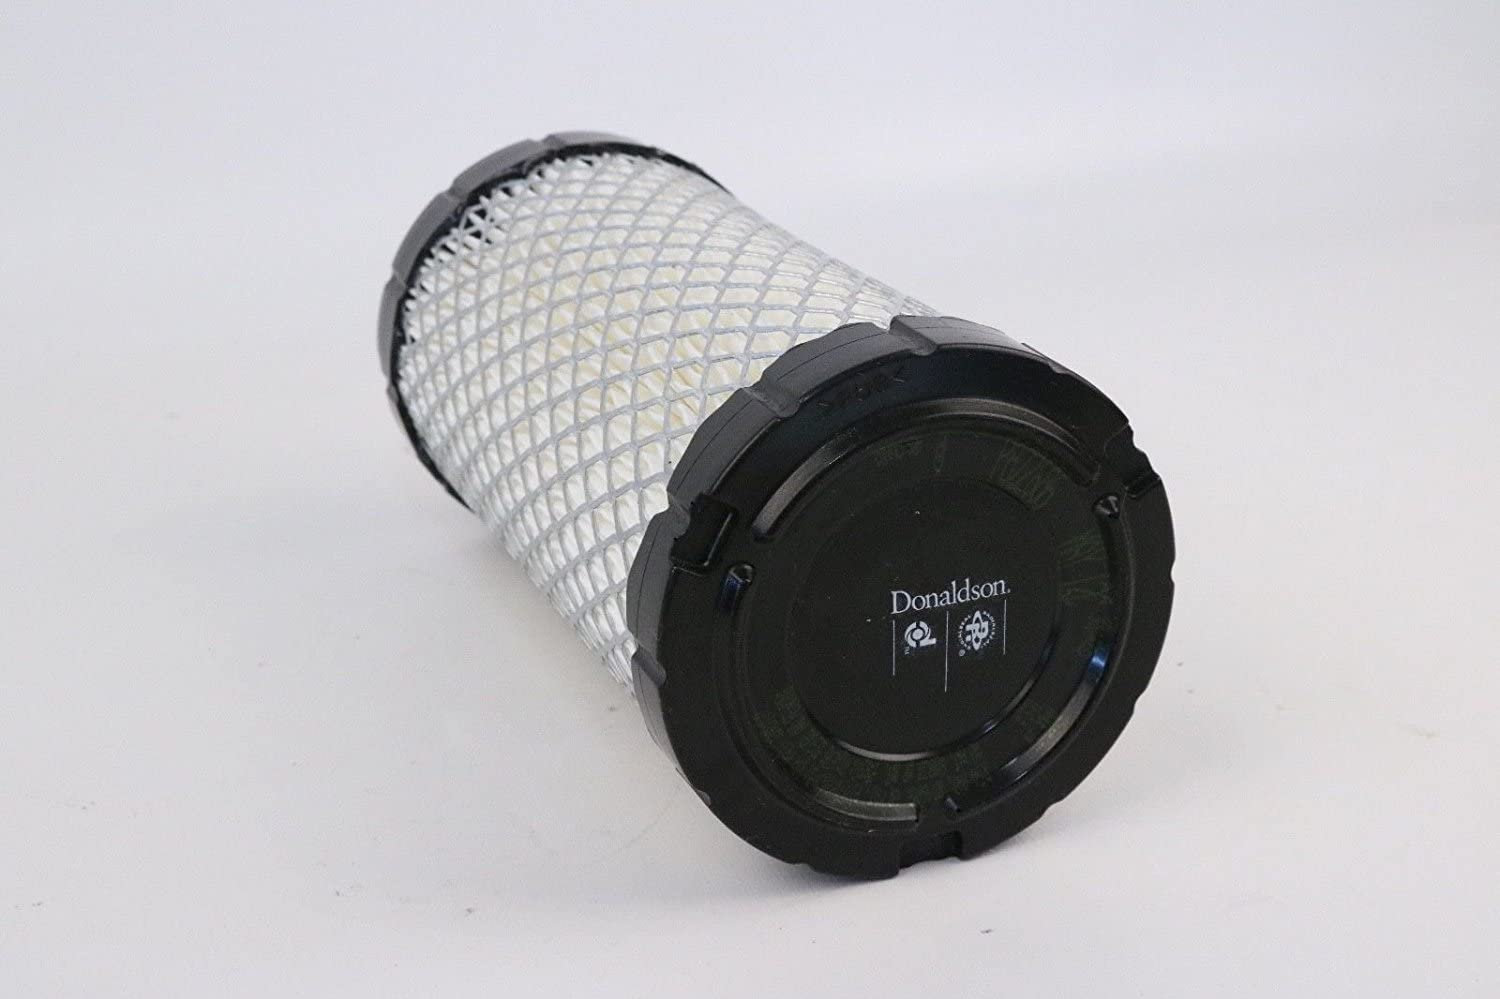 Donaldson P822686 Replacement for EZGO 28463G01 Air Filter Element Canister Style